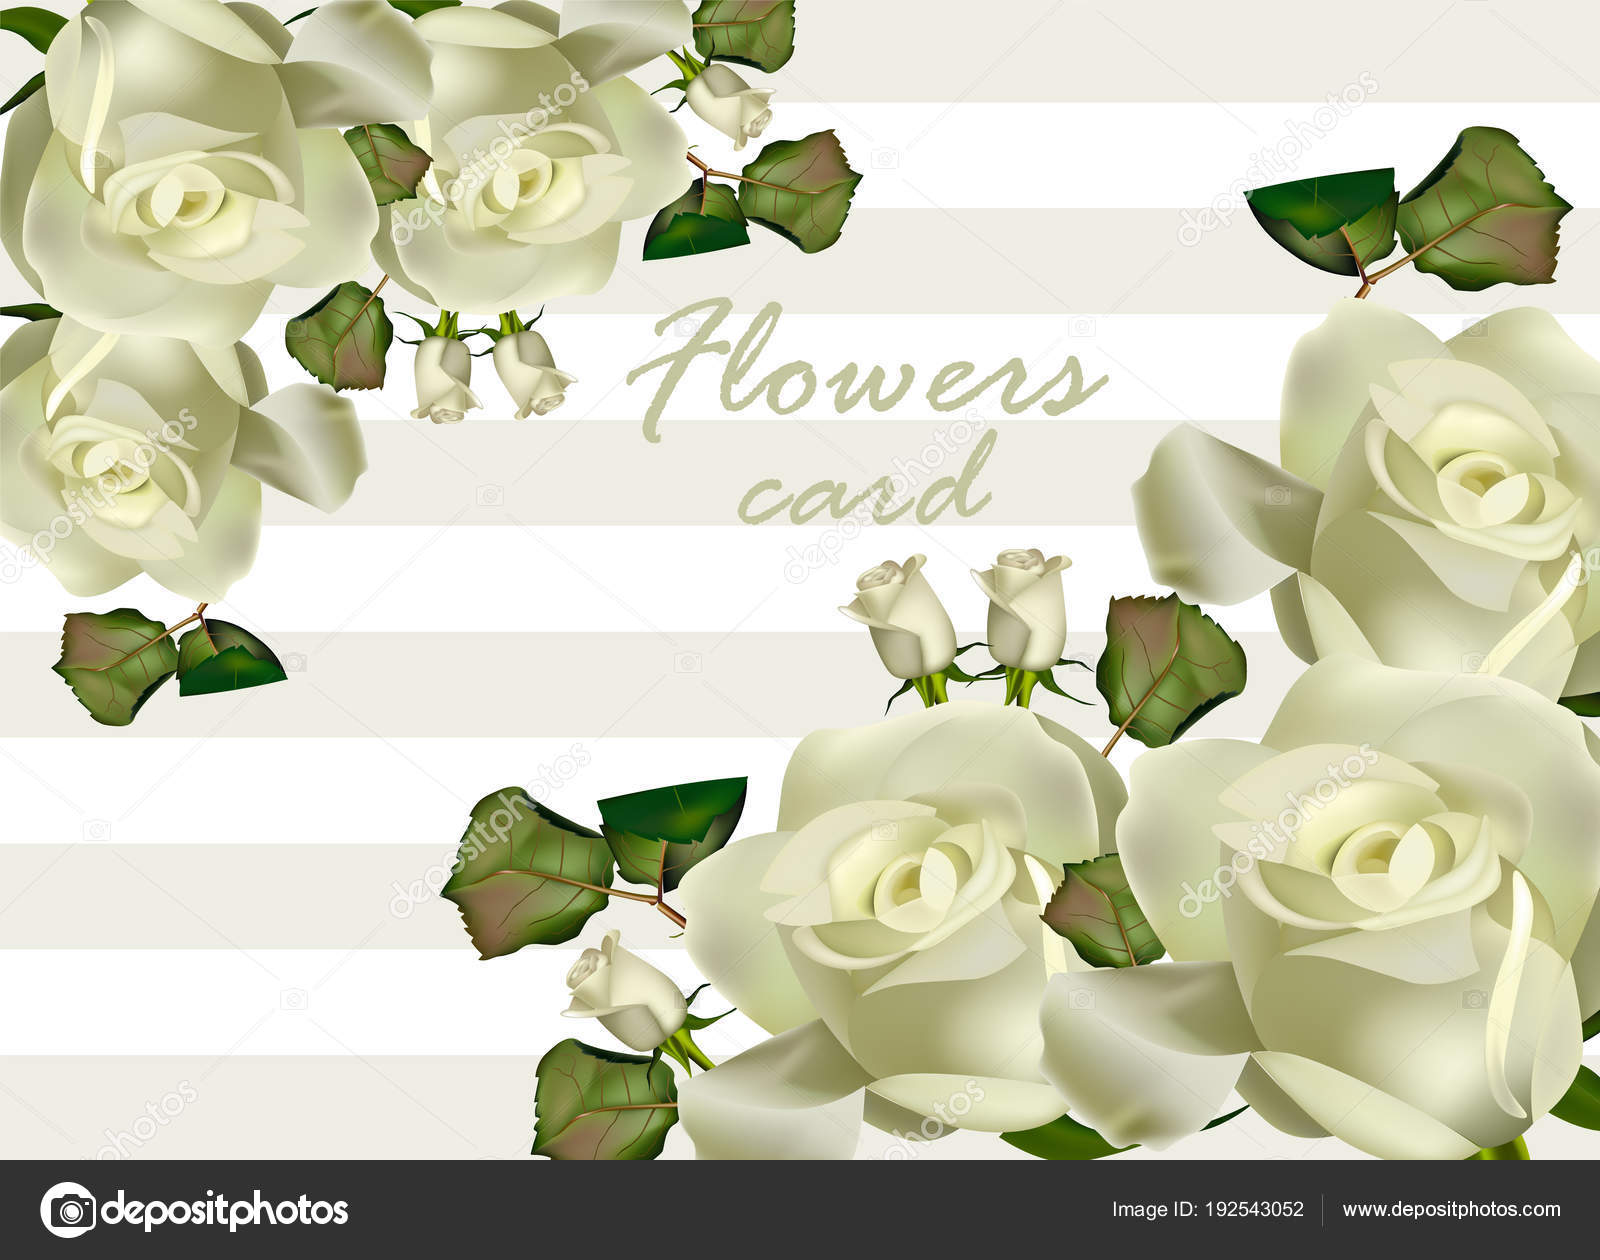 White Roses Flowers Card Vector Realistic Beautiful Floral